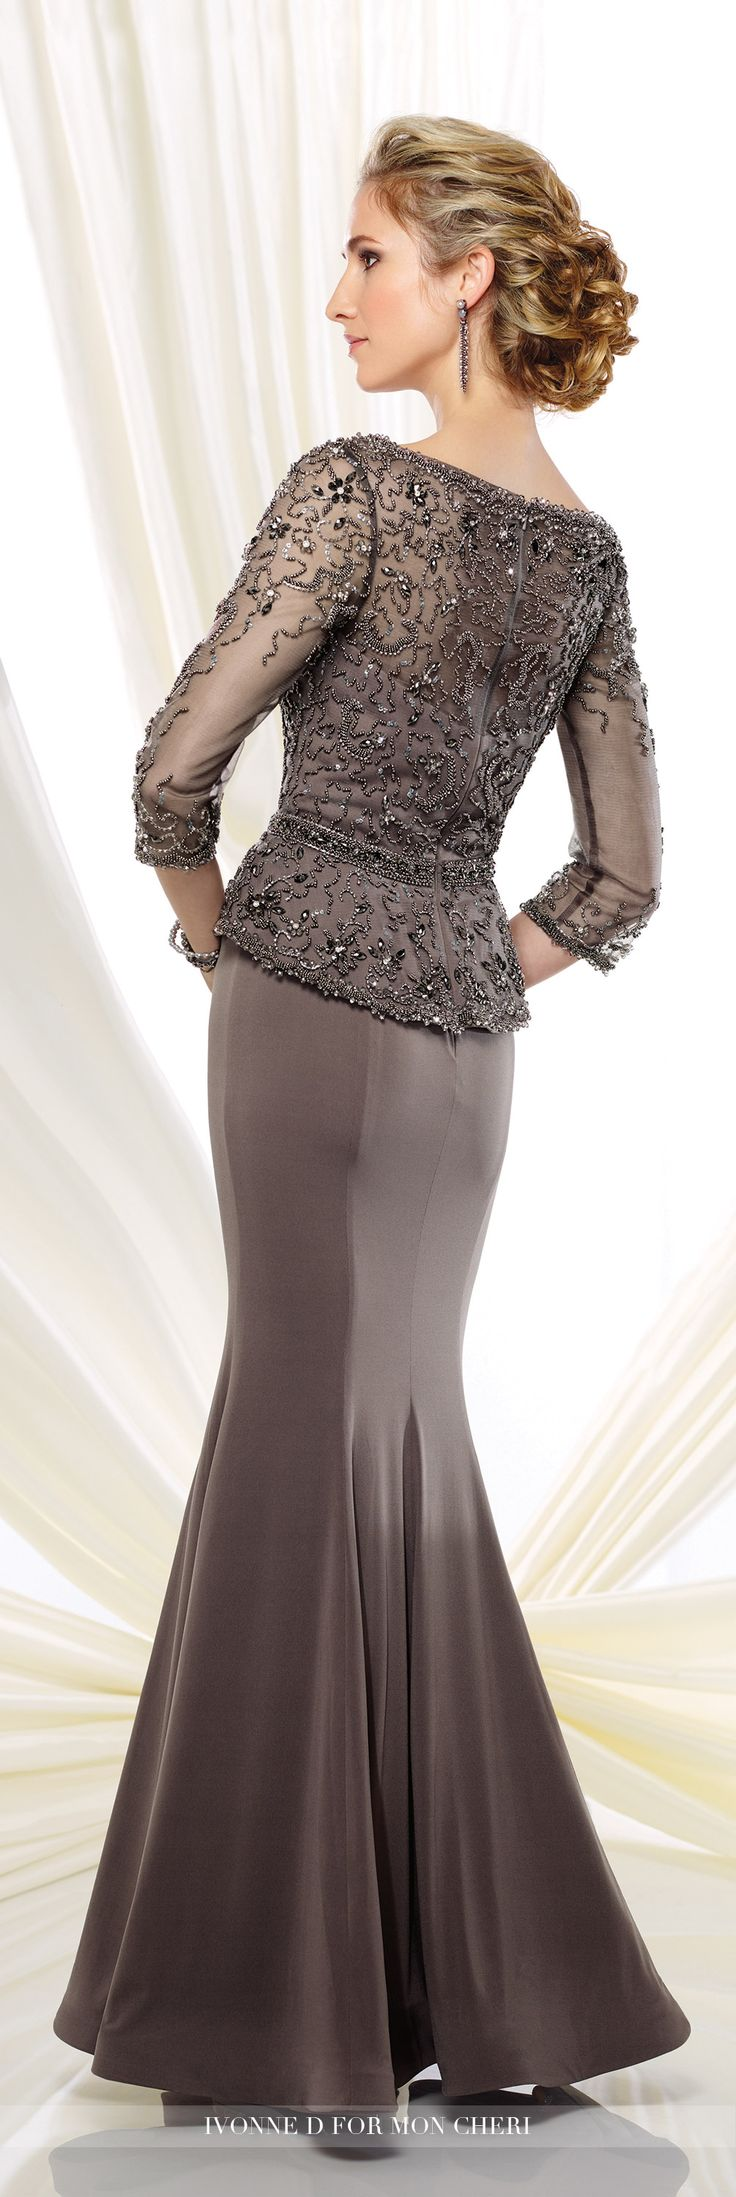 Formal Evening Gowns by Mon Cheri - Fall 2016 - Style No. 216D46 - jersey trumpet evening dress with illusion 3/4 length sleeves